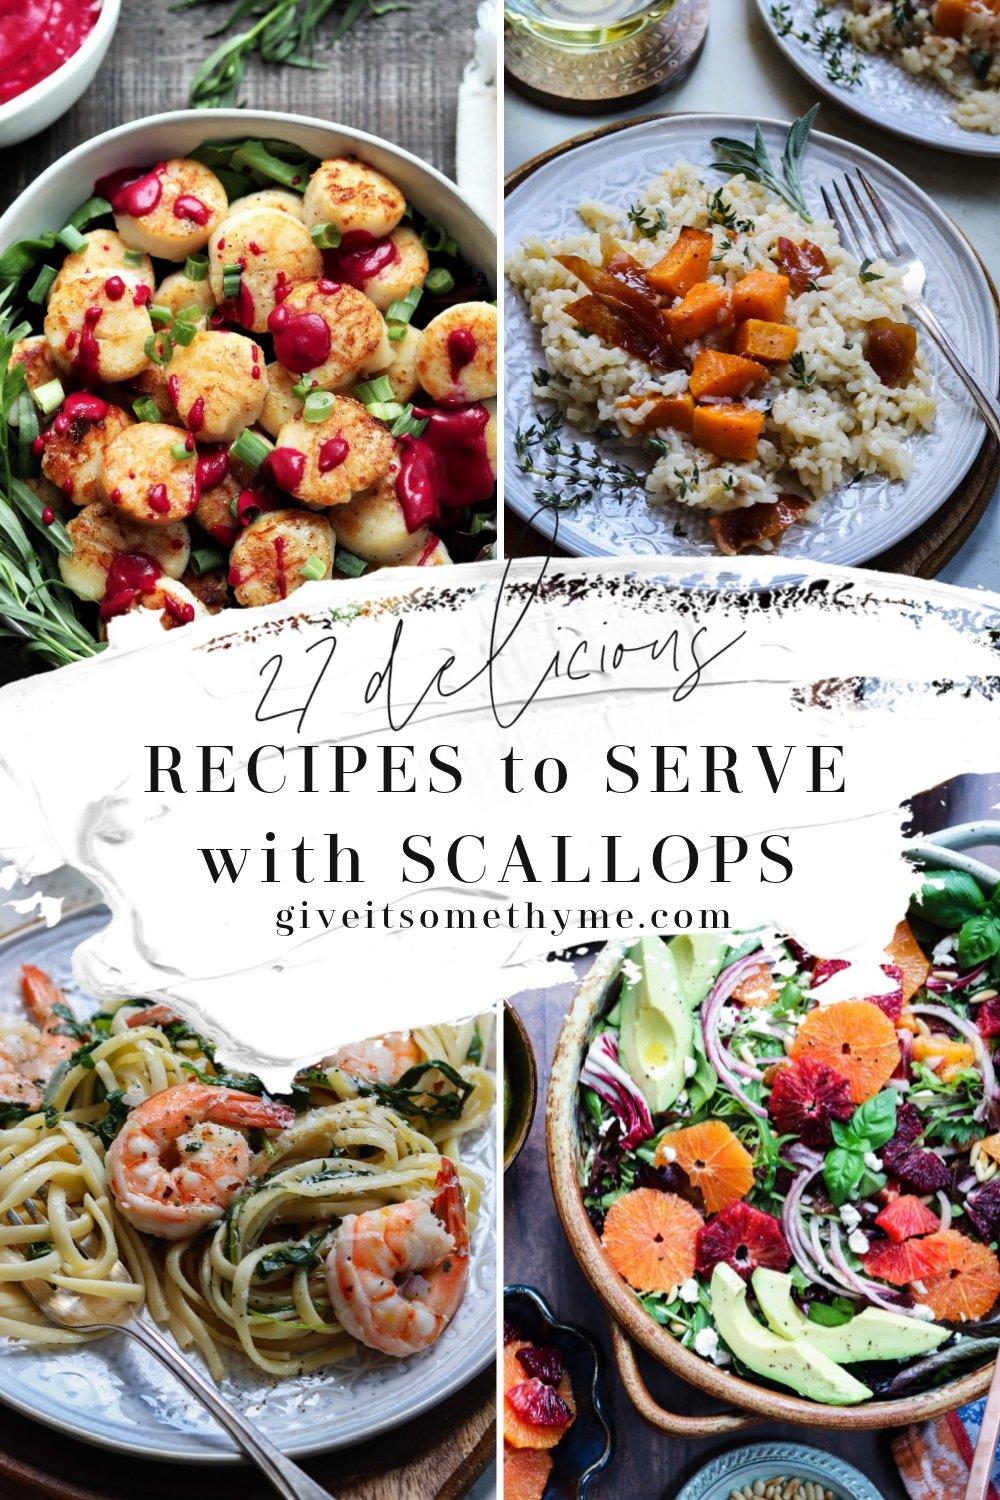 Pasta, rice, salad, seafood and sauces that pair well with scallops.